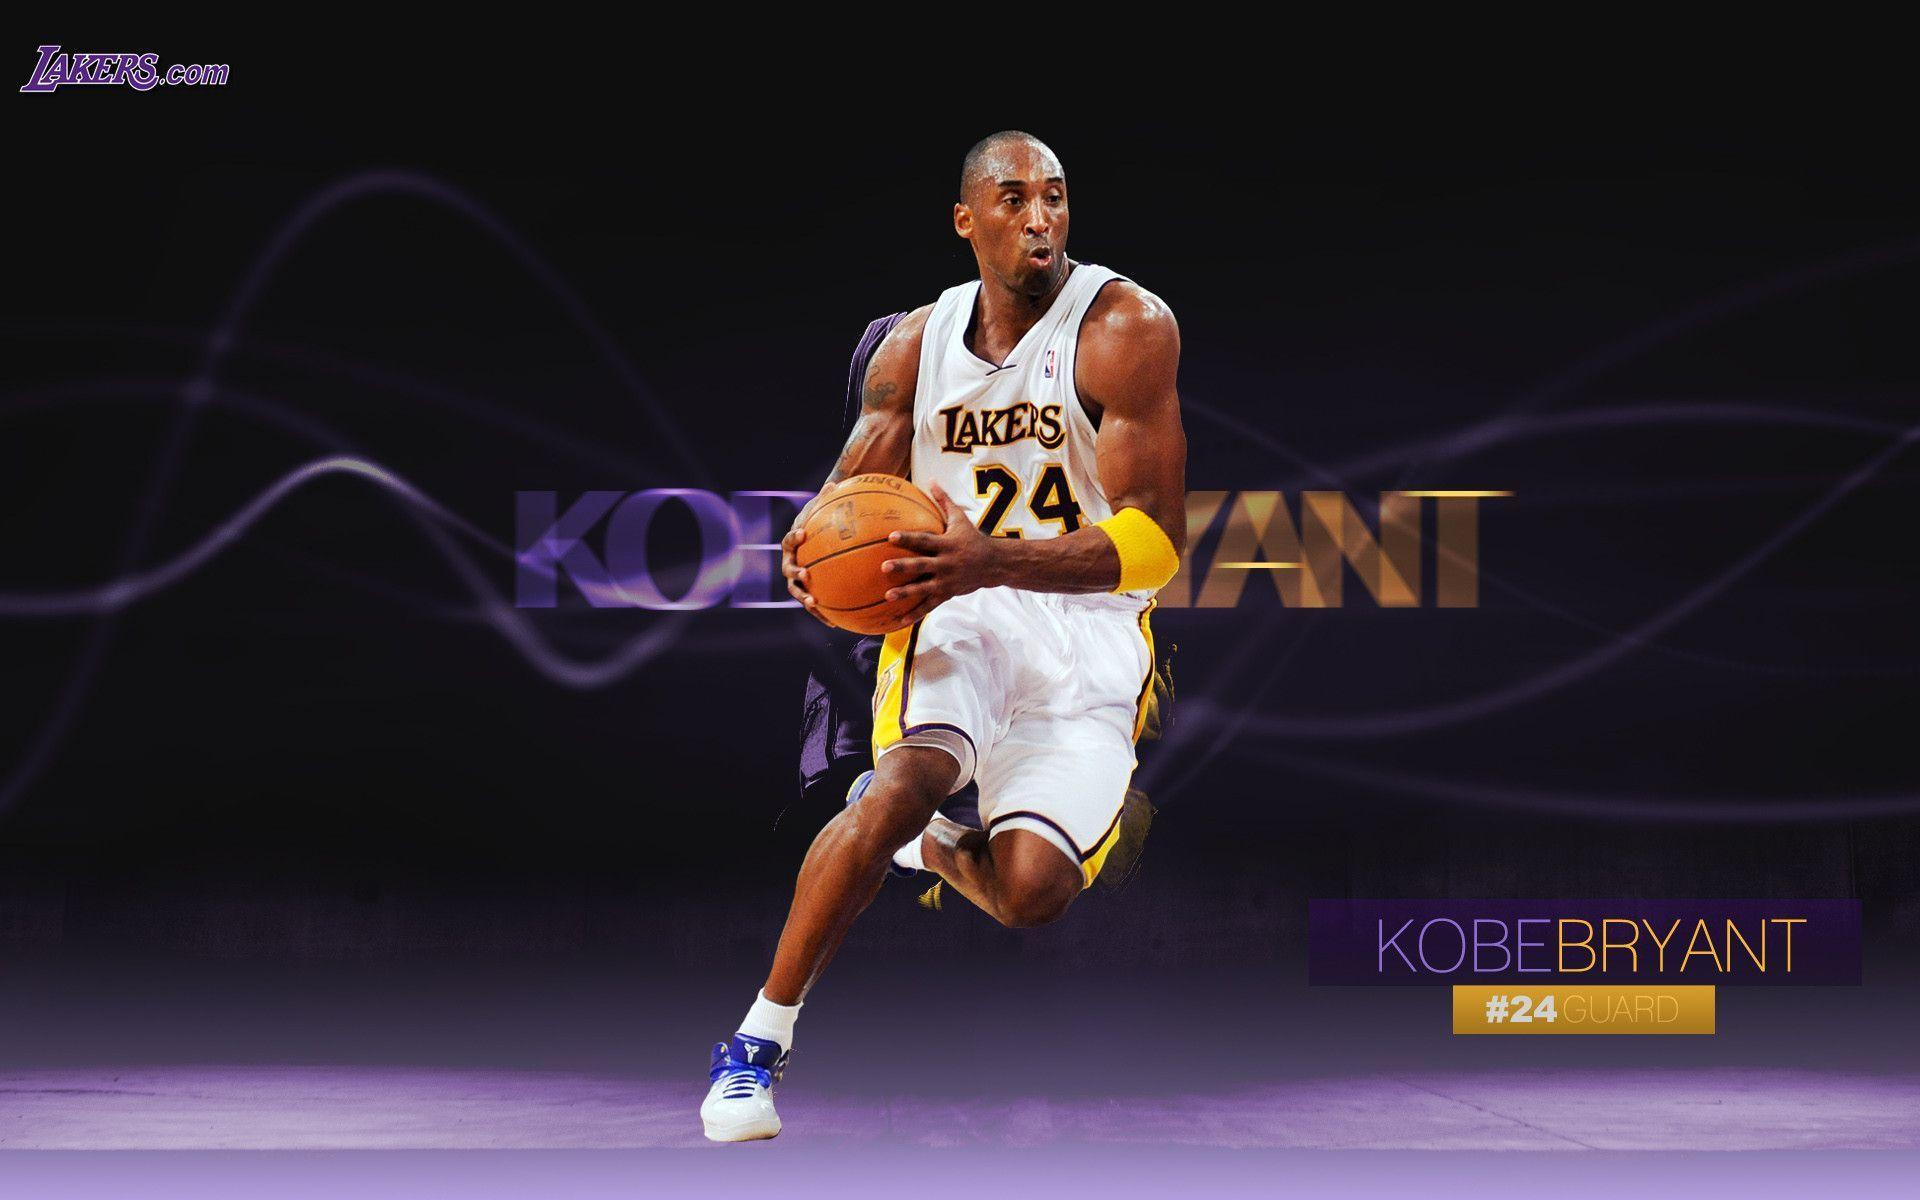 kobe bryant nice wallpapers - photo #28